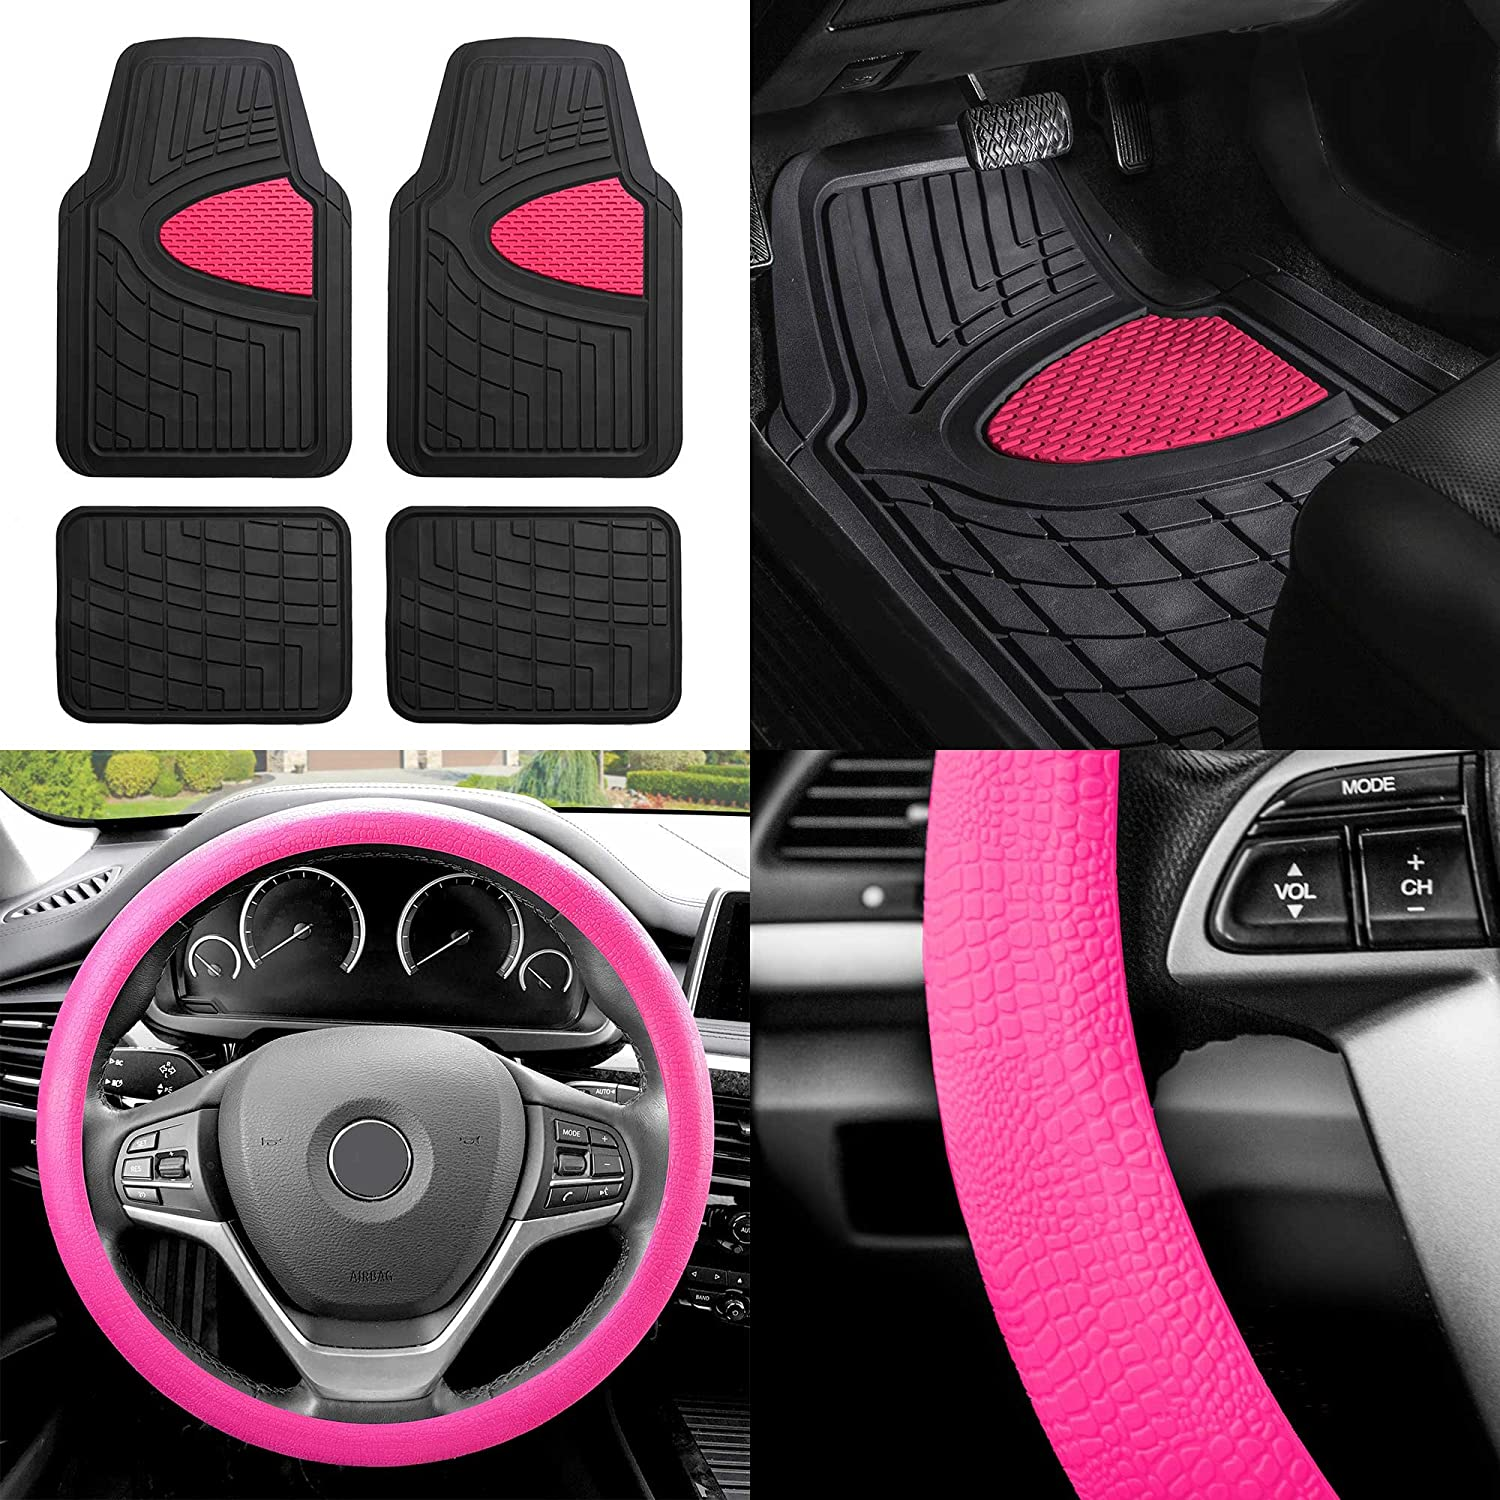 Fh Group F11311 Premium Tall Channel Rubber Trimmable Floor Mats W Fh3001 Snake Pattern Silicone Steering Wheel Cover Pink Black Universal Fit For Trucks Suvs And Vans Automotive Amazon Com